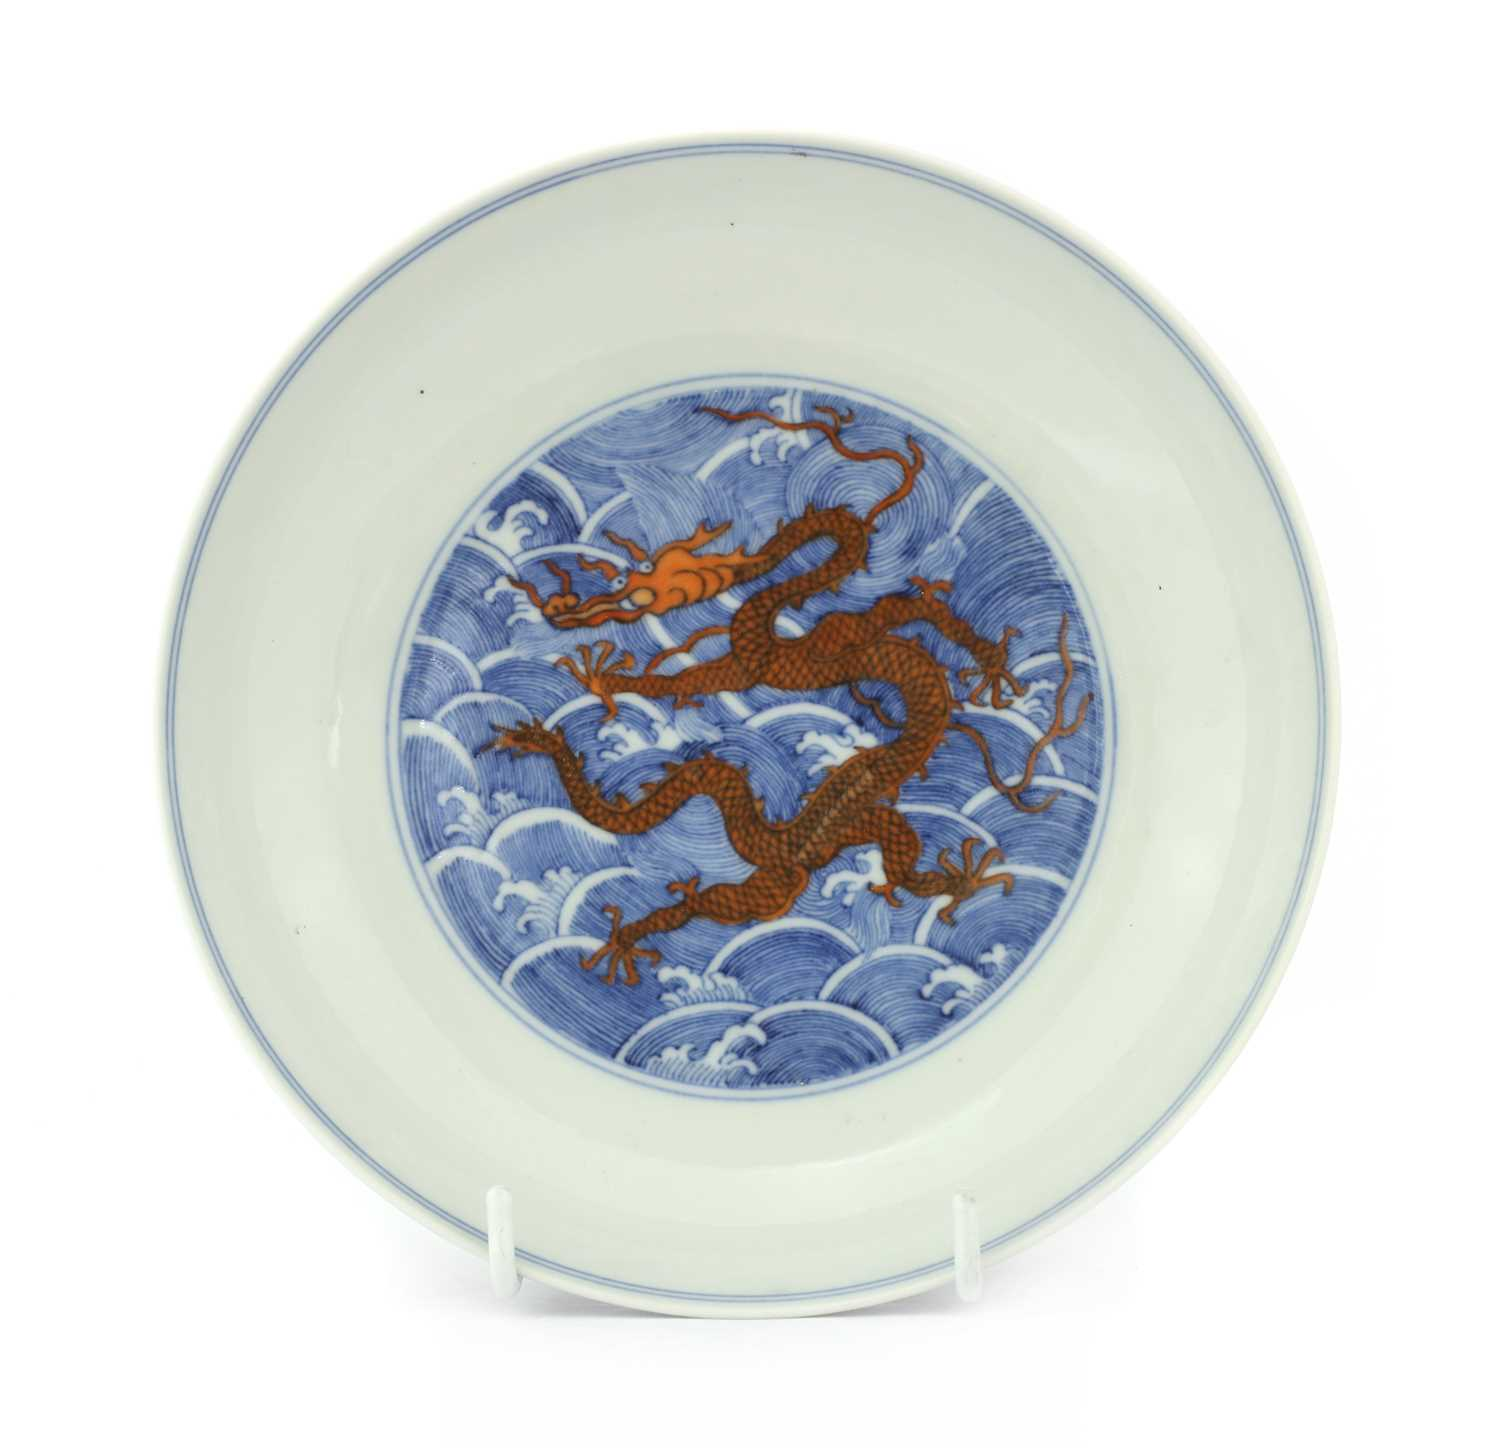 Lot 53 - A Chinese blue and white plate